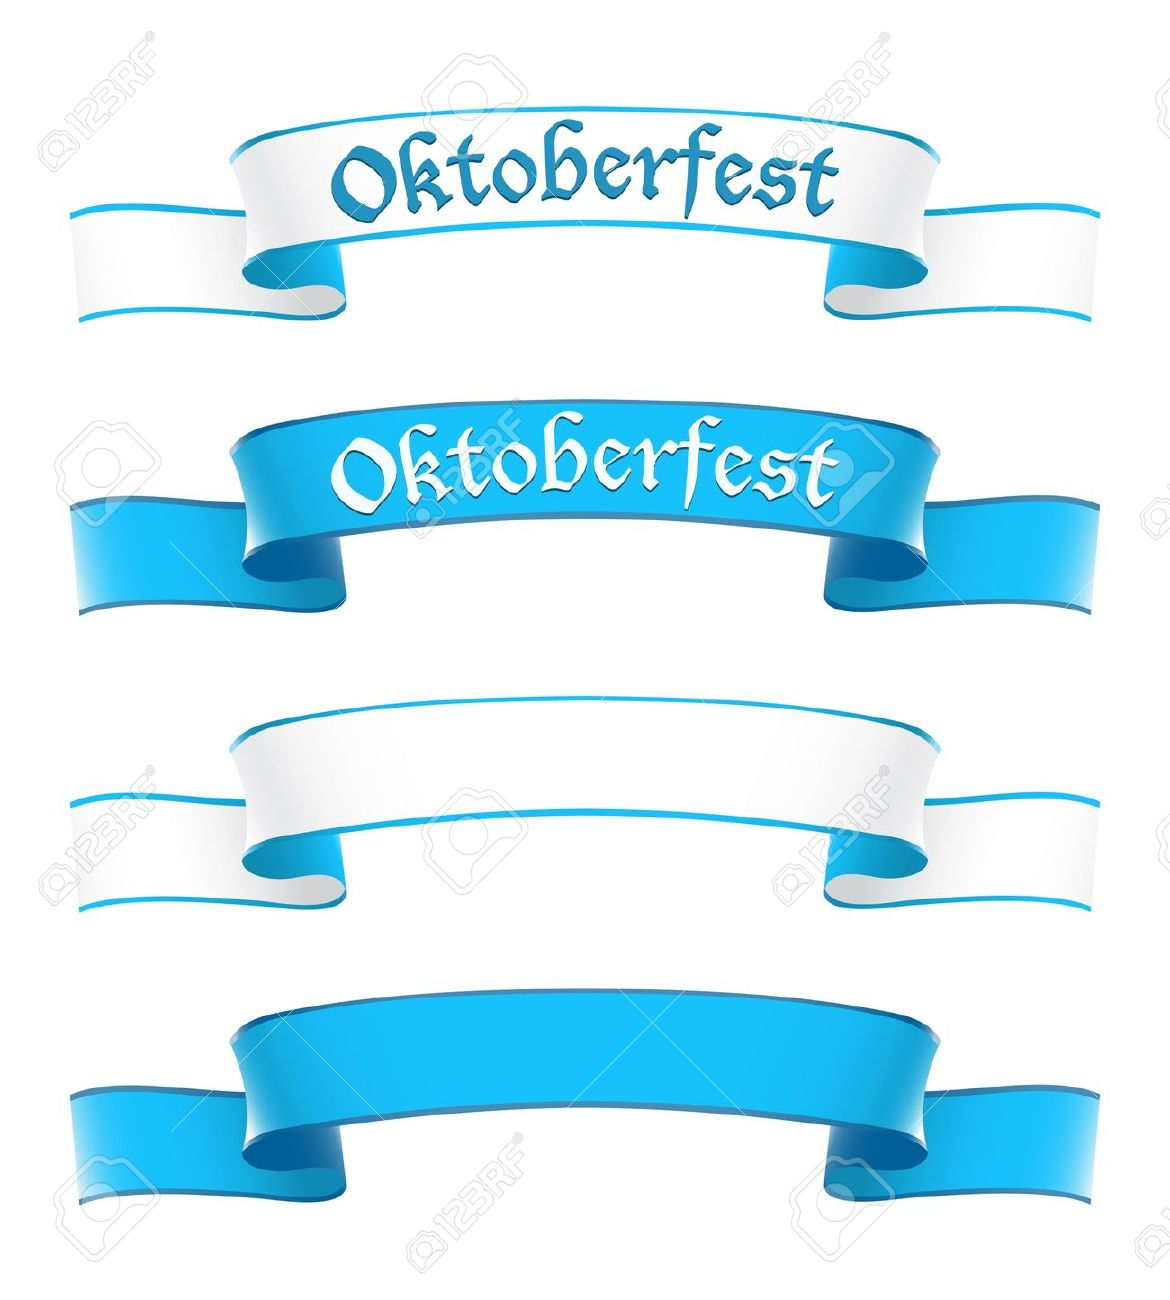 Oktoberfest Banners In Bavarian Colors Royalty Free Cliparts.